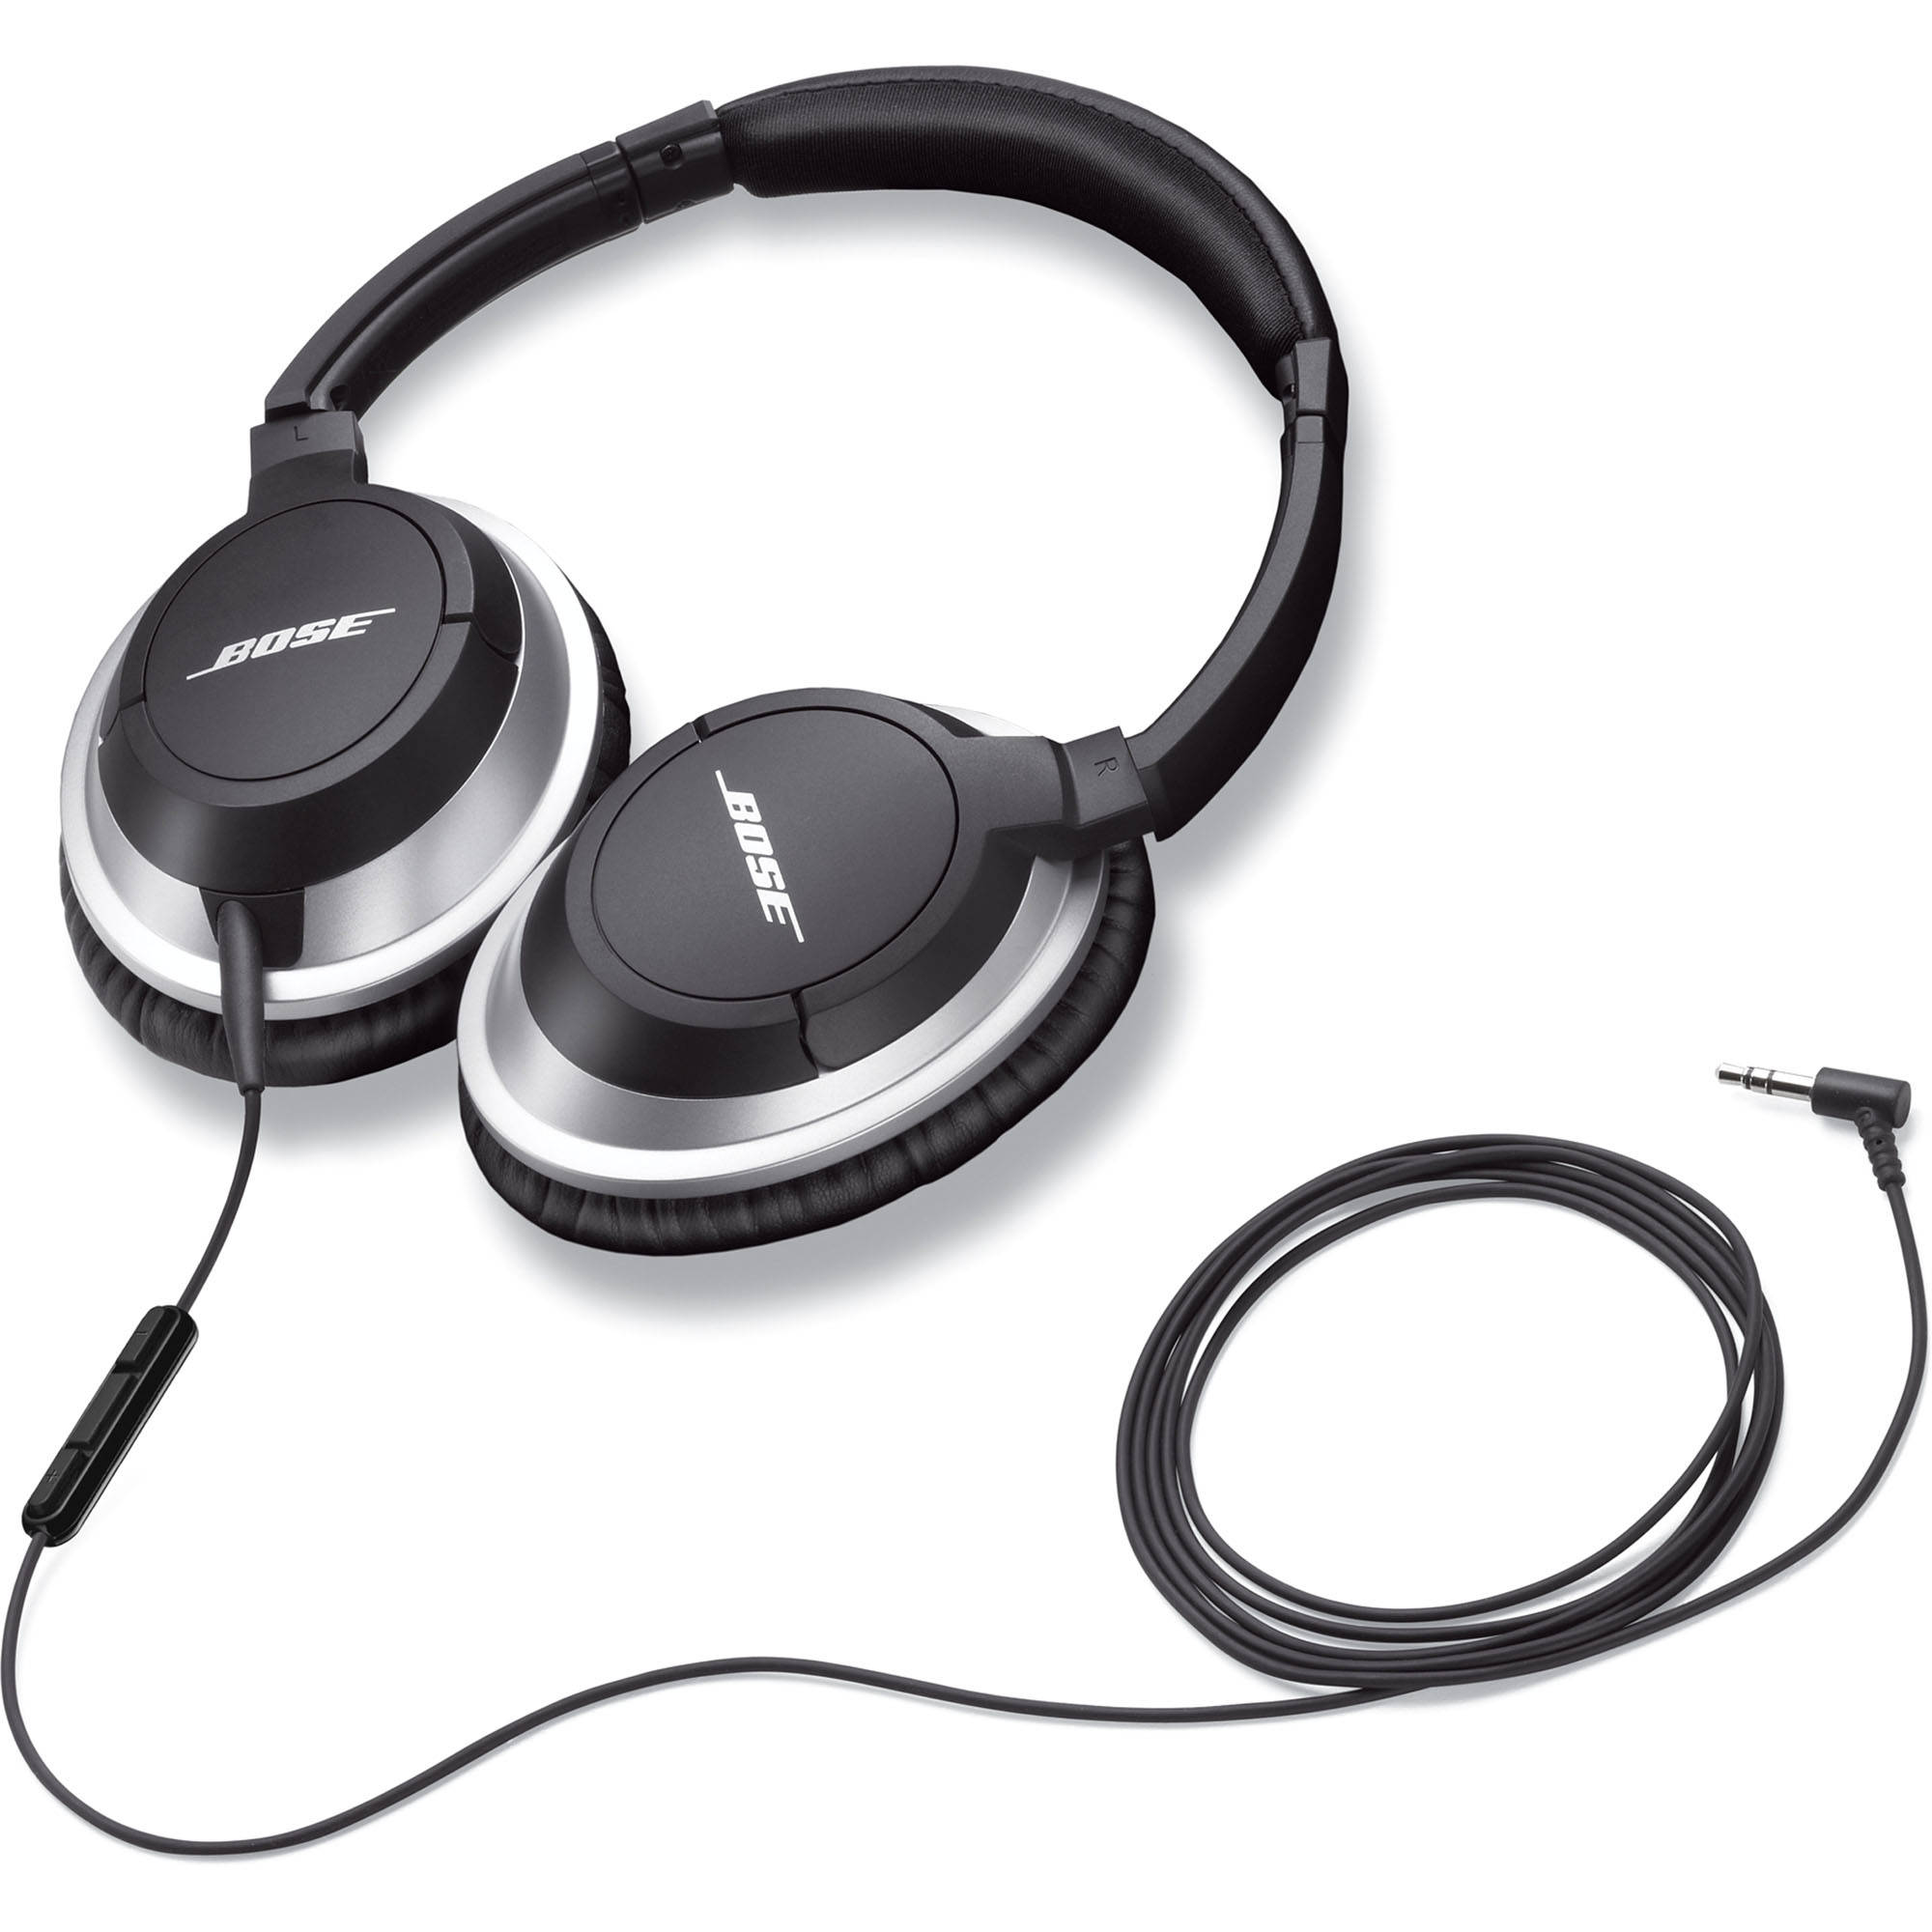 bose ae2i around ear audio headphones with mic and 345444 0010. Black Bedroom Furniture Sets. Home Design Ideas